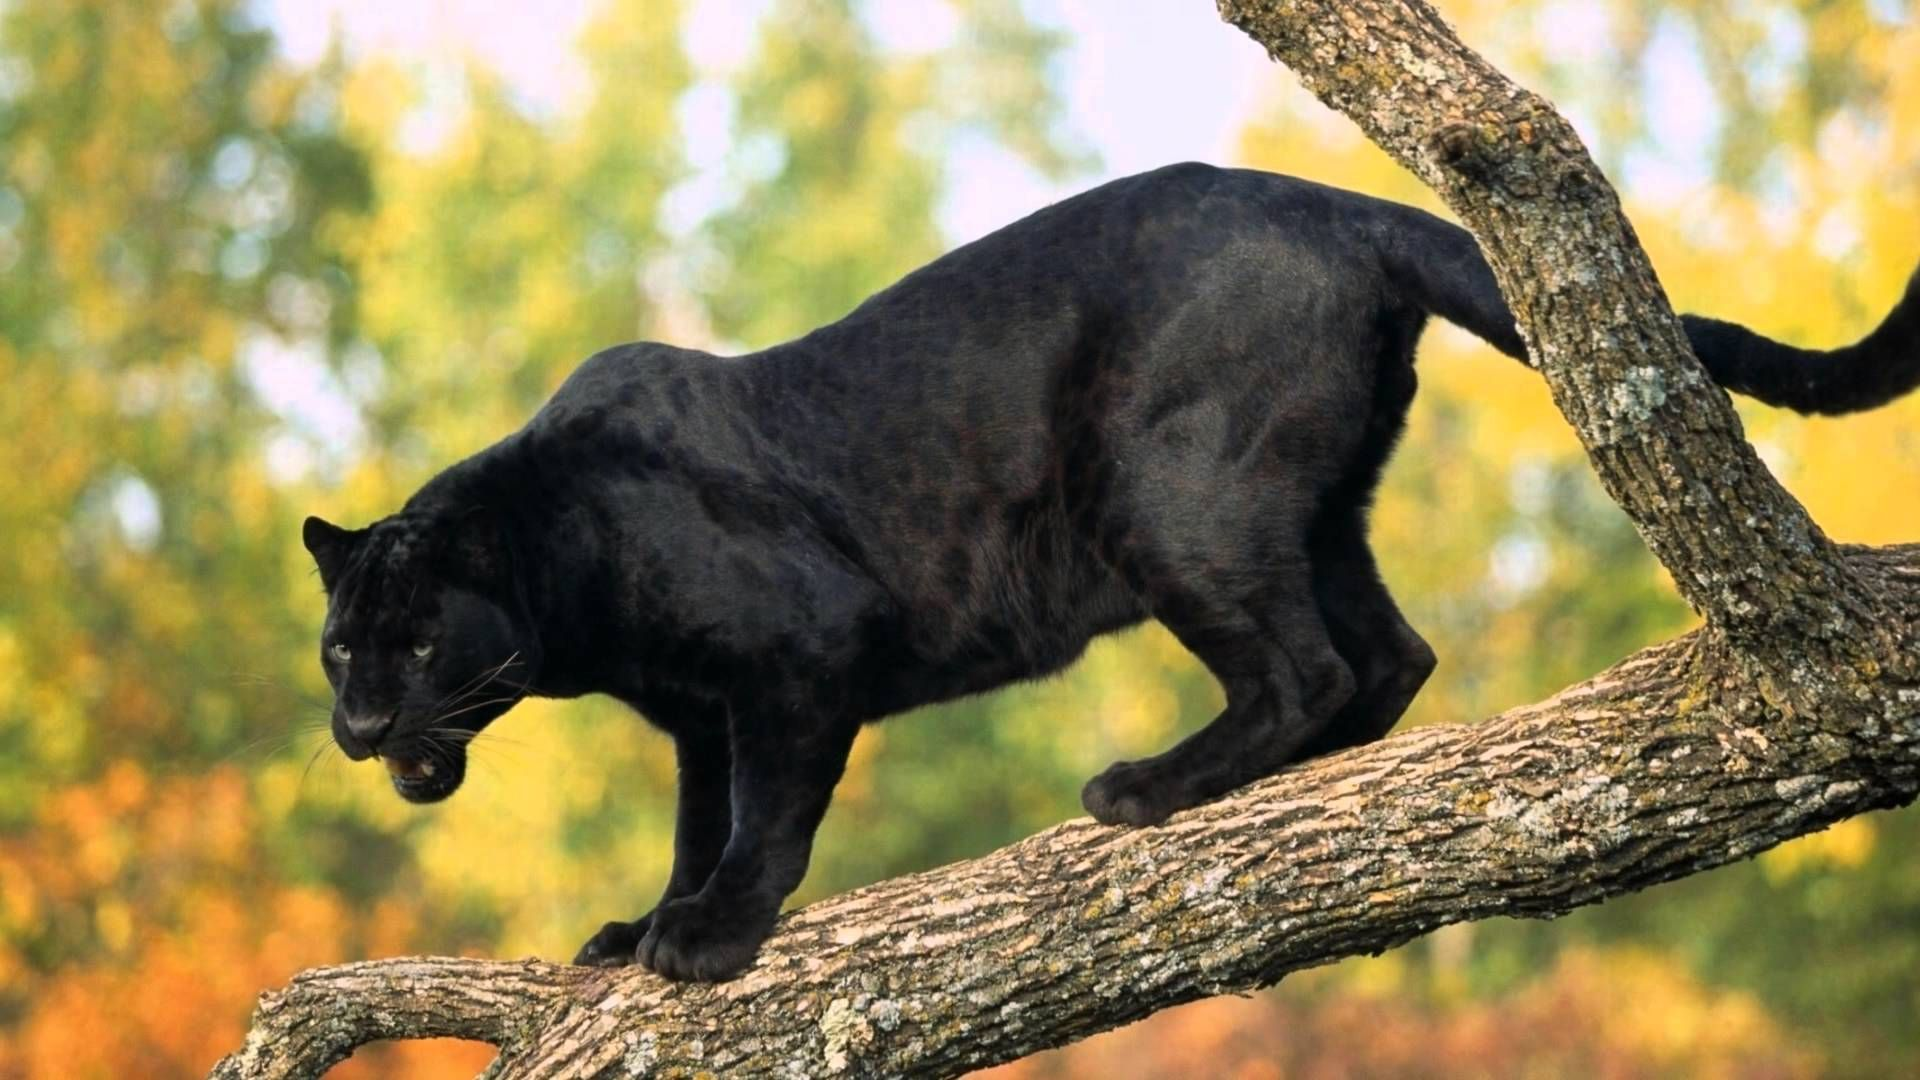 Beautiful Animals Of The World Maxresdefault Jpg Panther Black Panther Animals